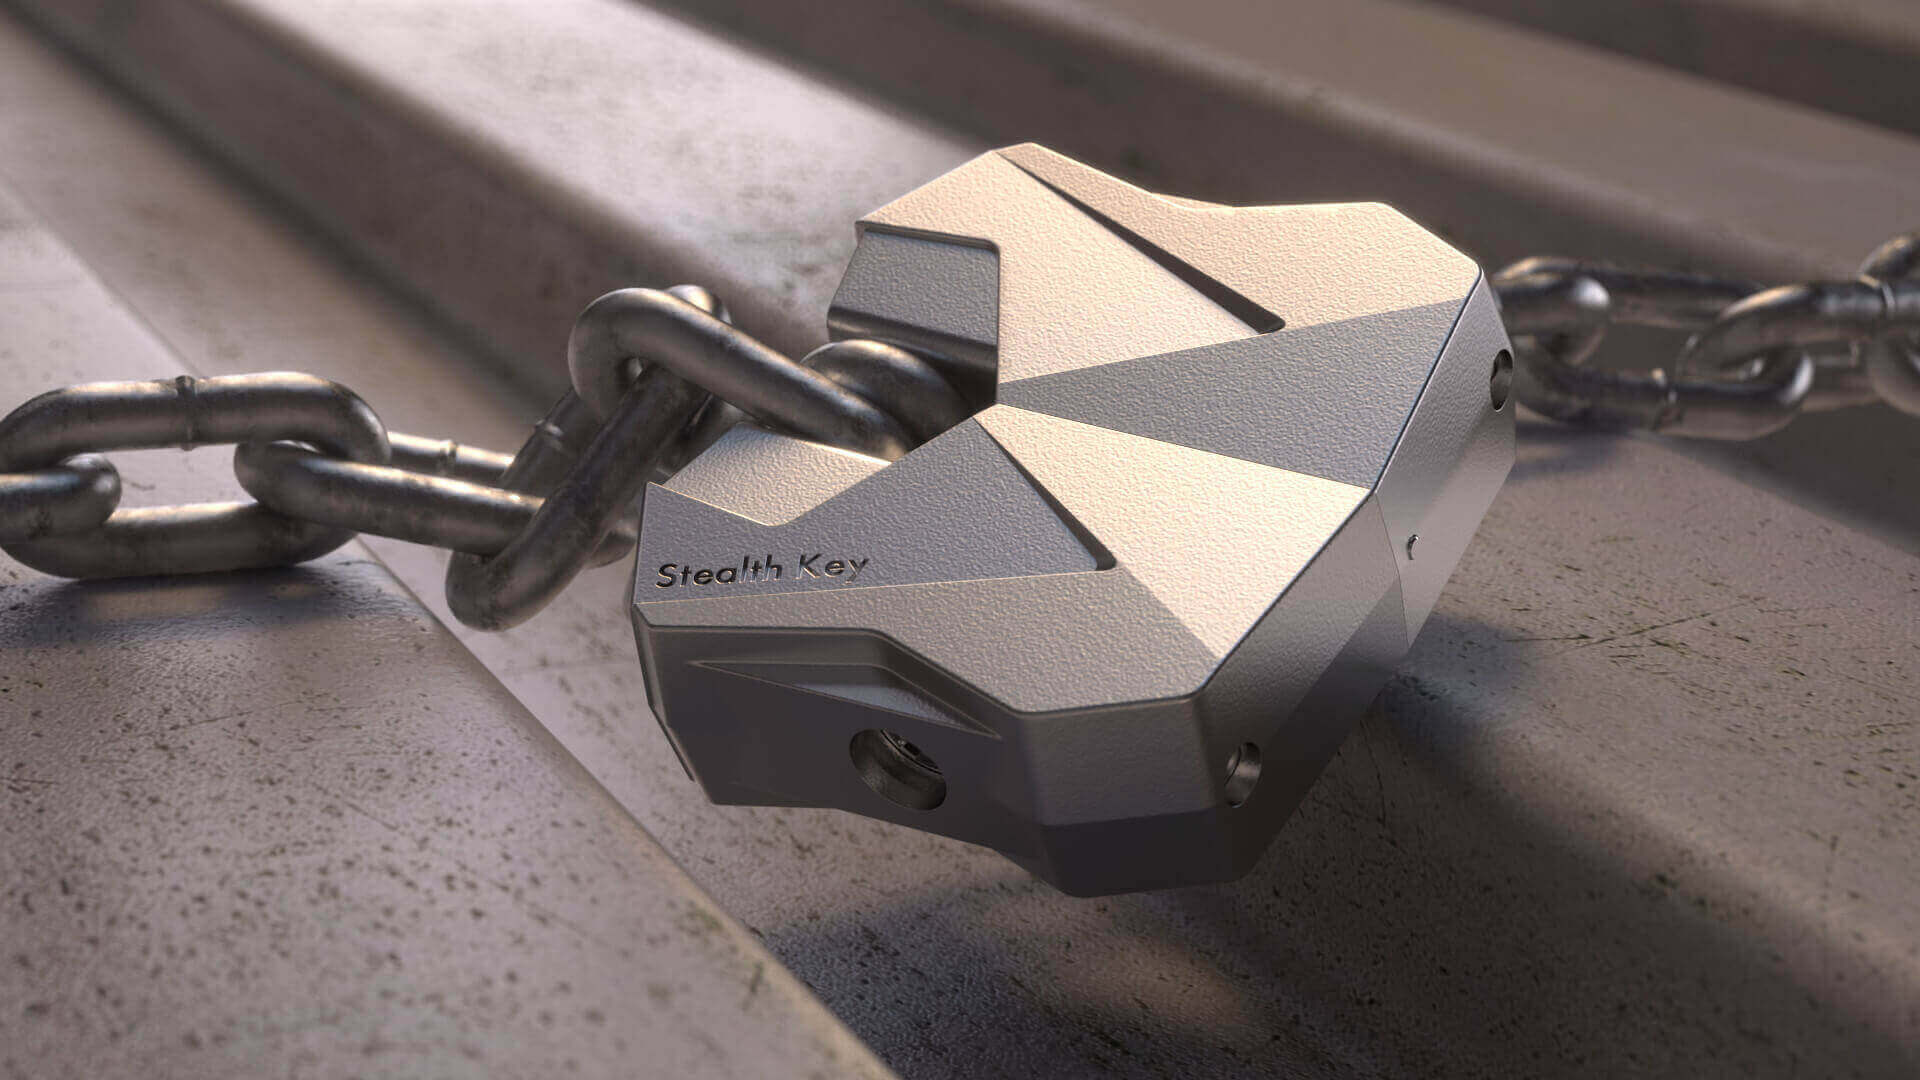 Stealth Key is a 3D Printed Security Key that Can't Be Copied | All3DP